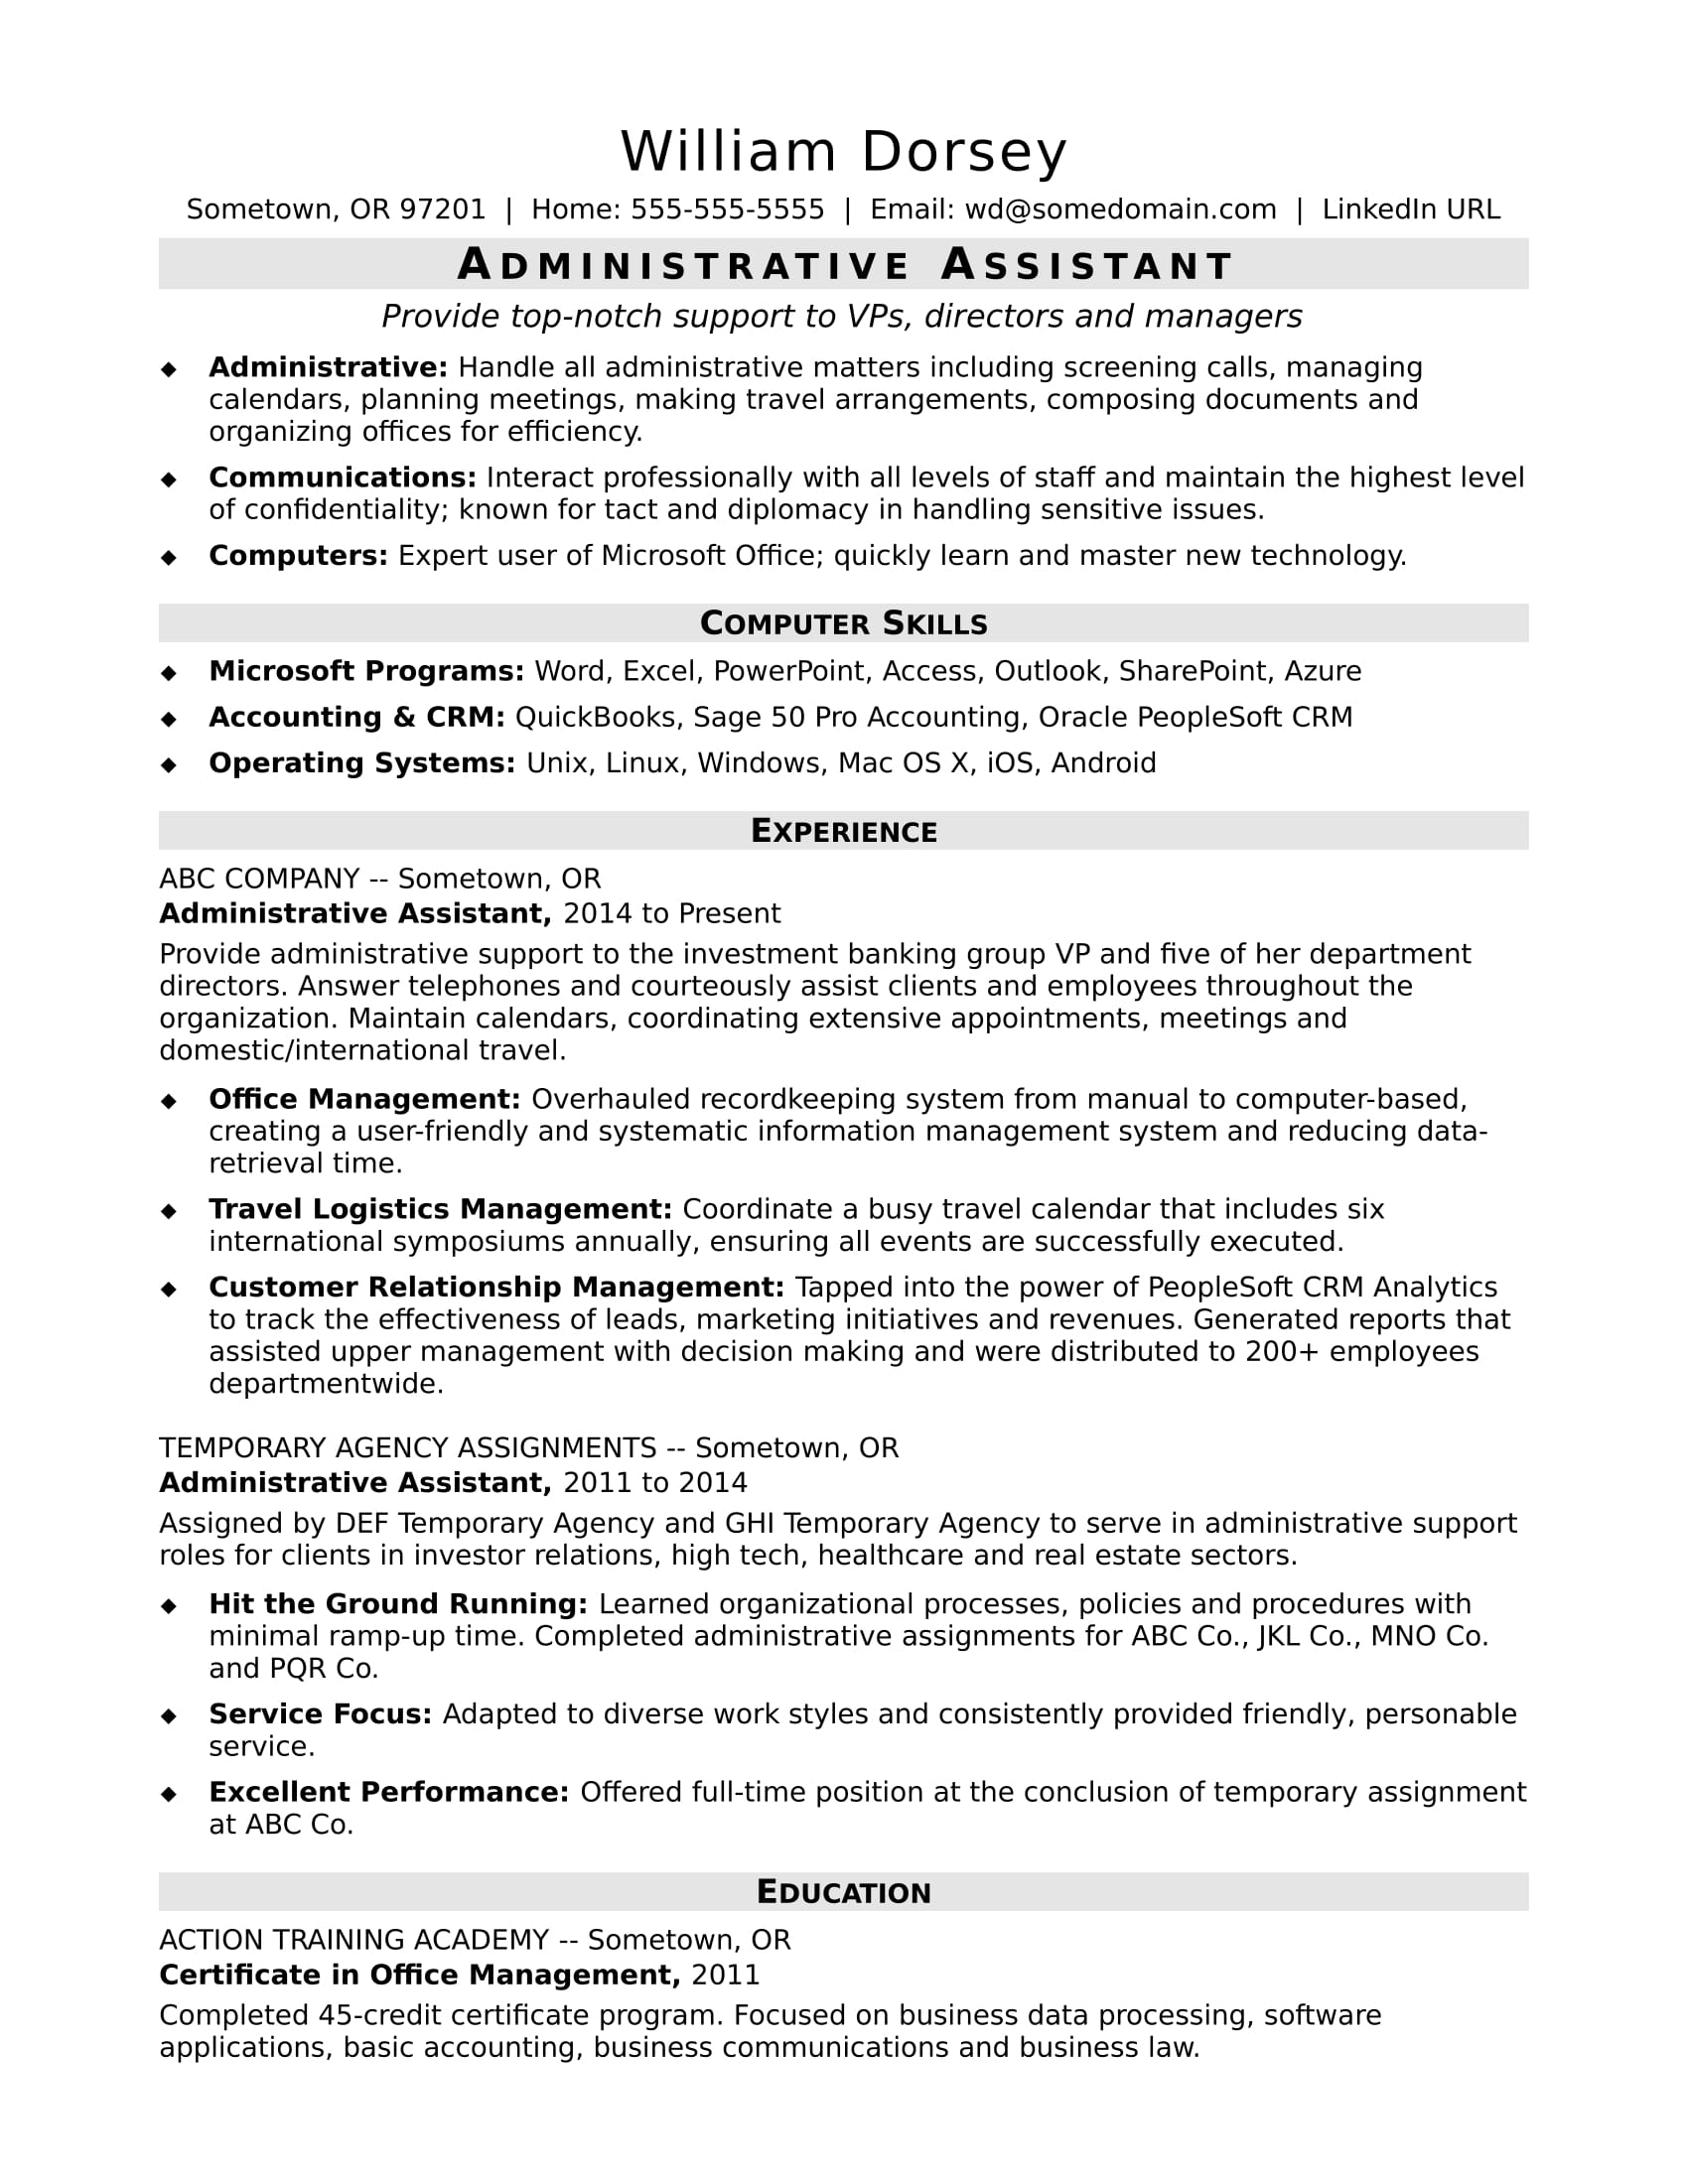 midlevel administrative assistant resume sample monster mac writing software judicial Resume Mac Resume Writing Software